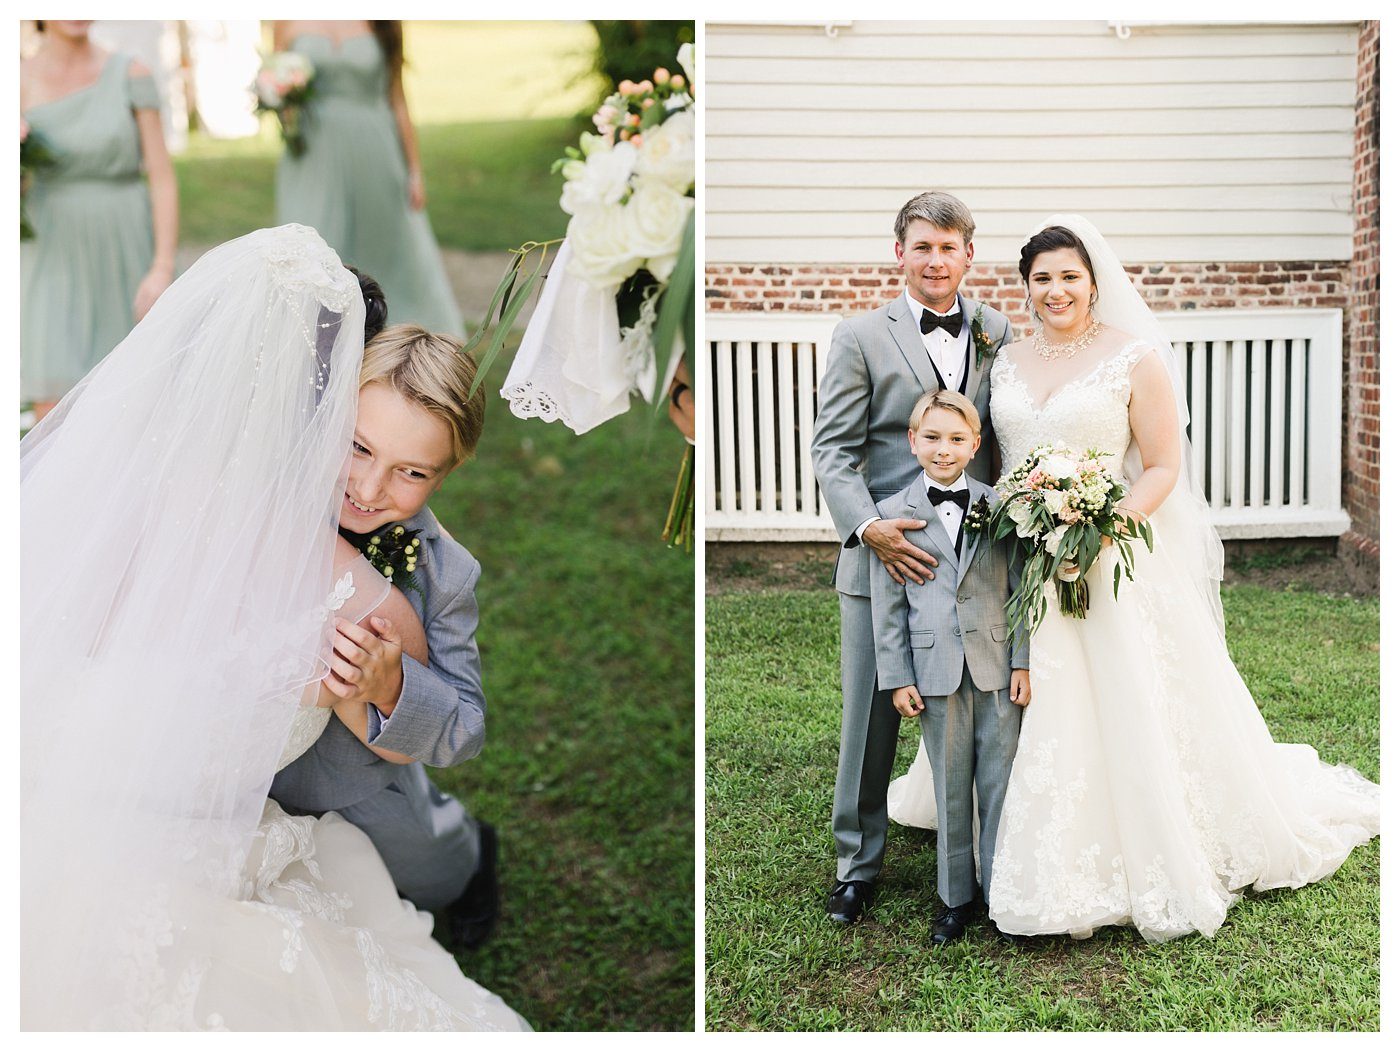 Historic_Hope_Plantation_Wedding_Photography_Sage_Summer_Outdoor_Windsor_NC_0035.jpg